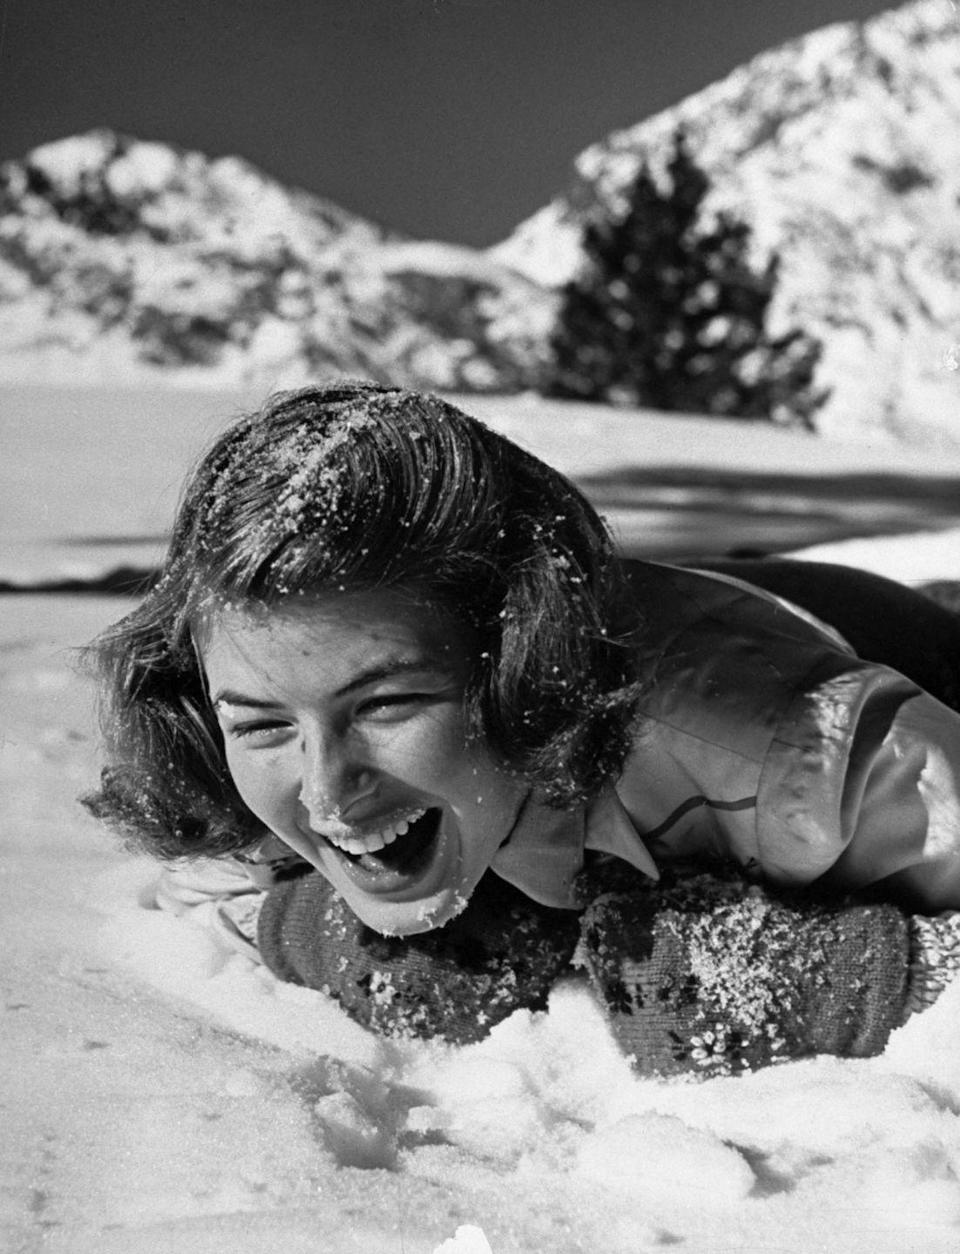 <p>Actress Ingrid Bergman laughing as she lies splashed with snow by an unseen playmate during her ski vacation at June Lake resort, circa 1941.</p>